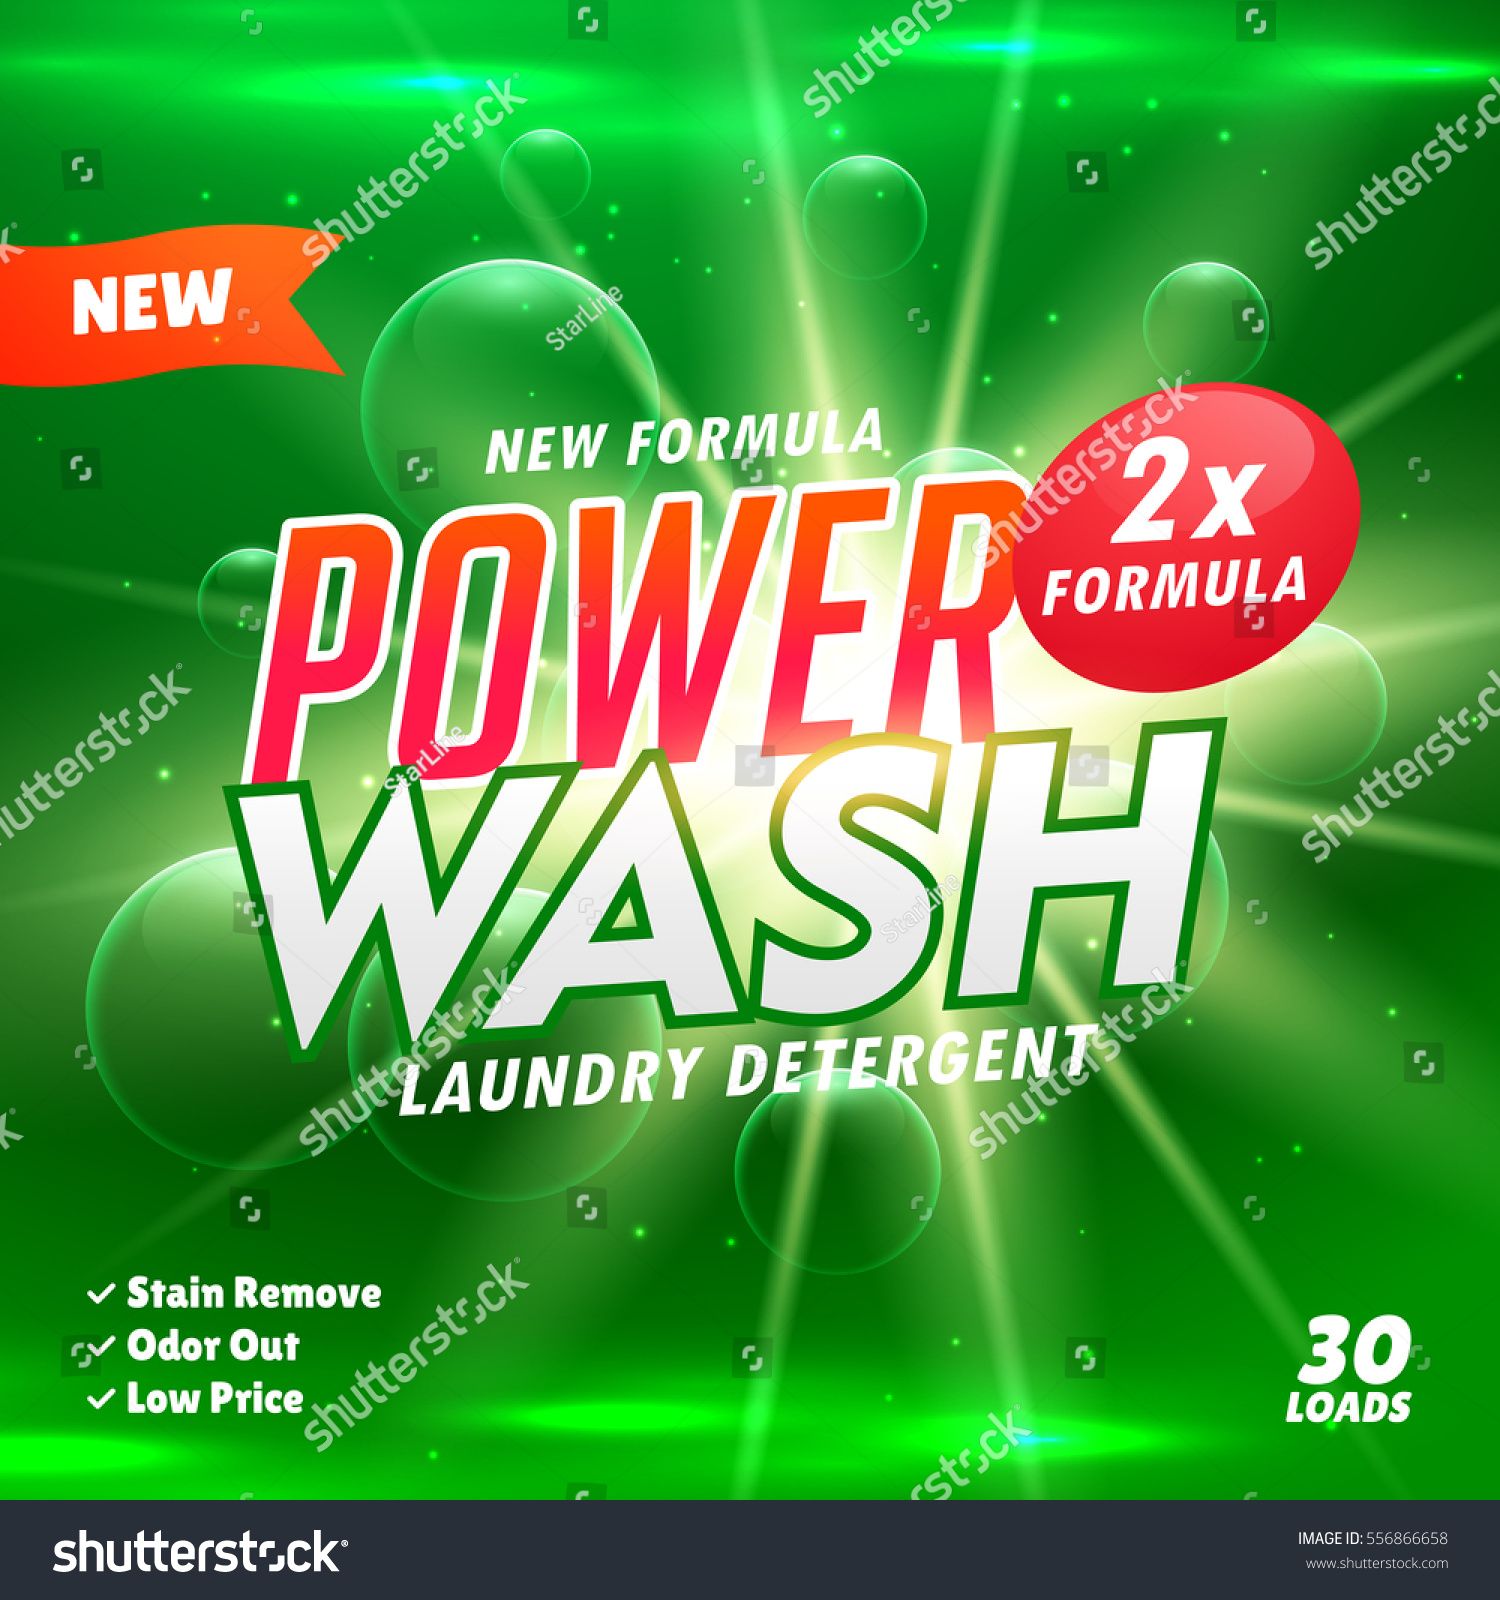 bathroom cleaning laundry detergent product designing stock vector